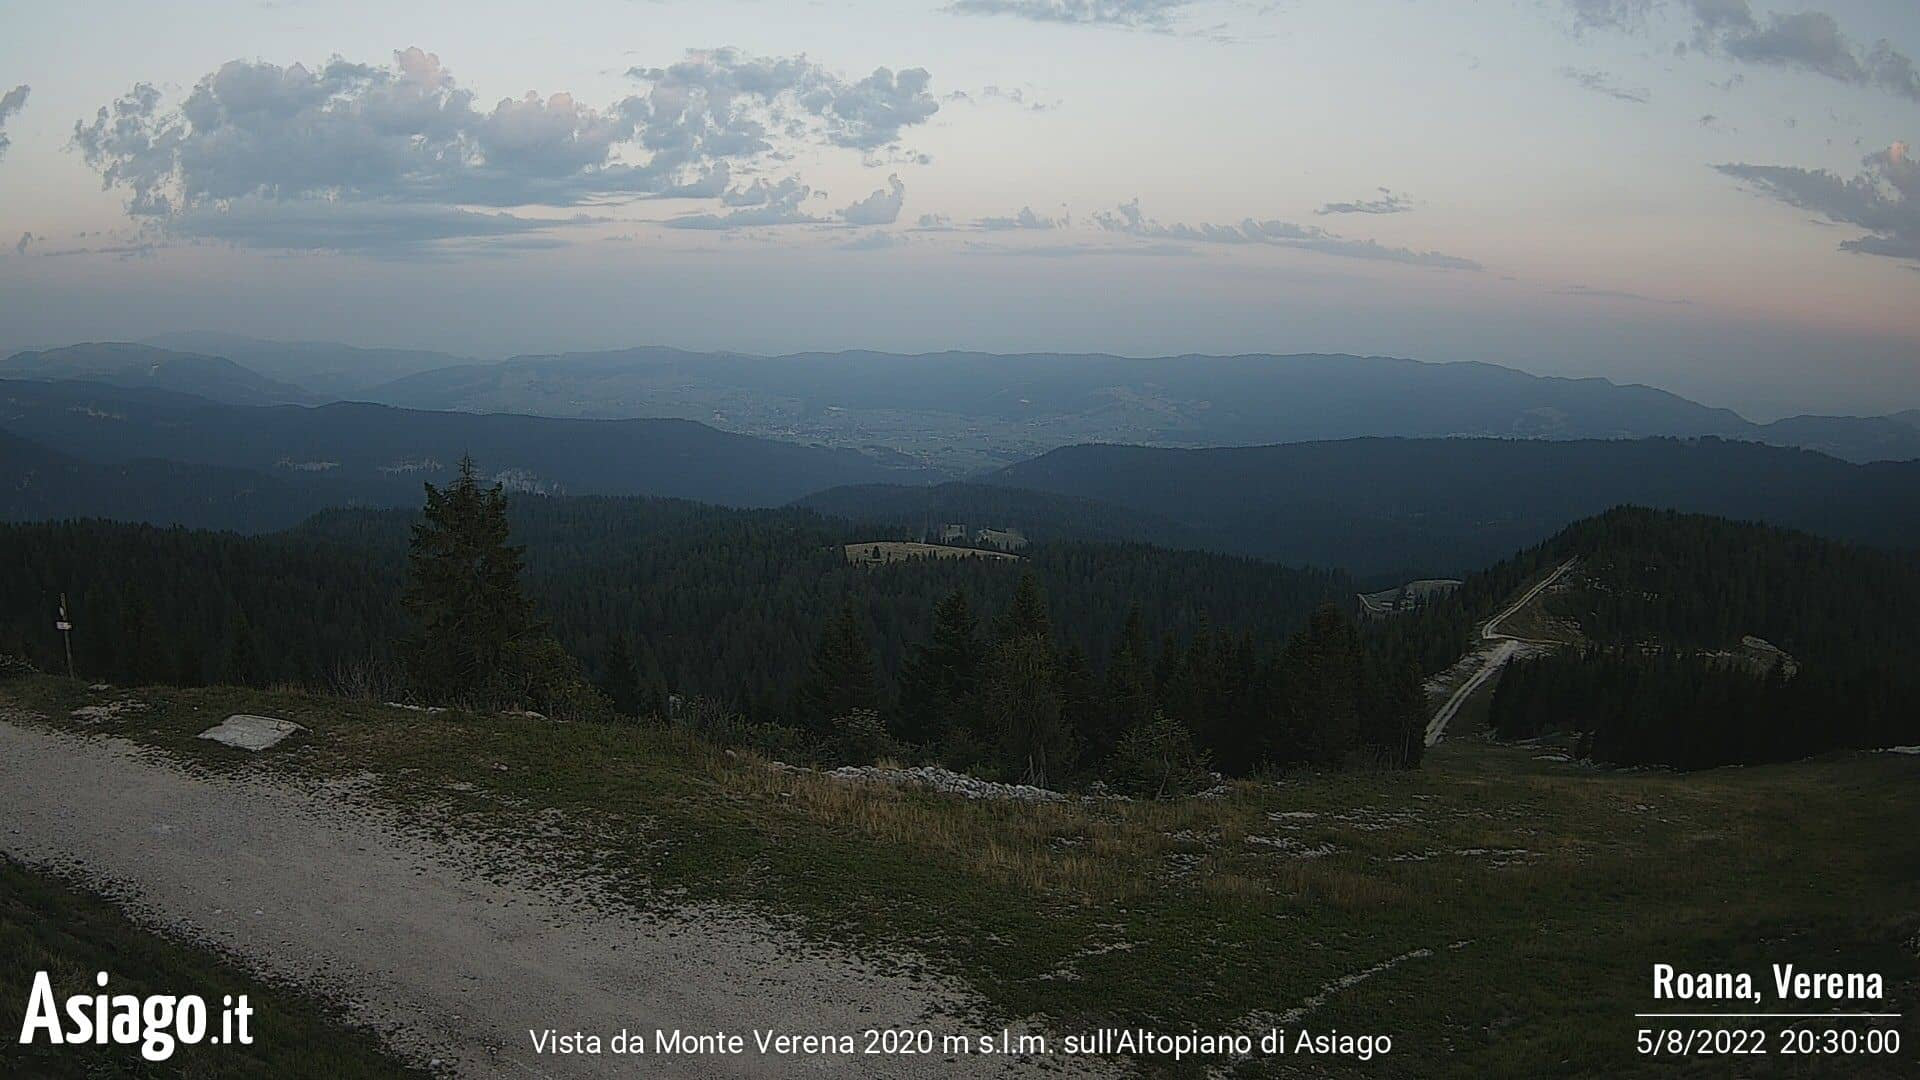 Live-Webcam von Asiago.It vom Monte Verena 2020